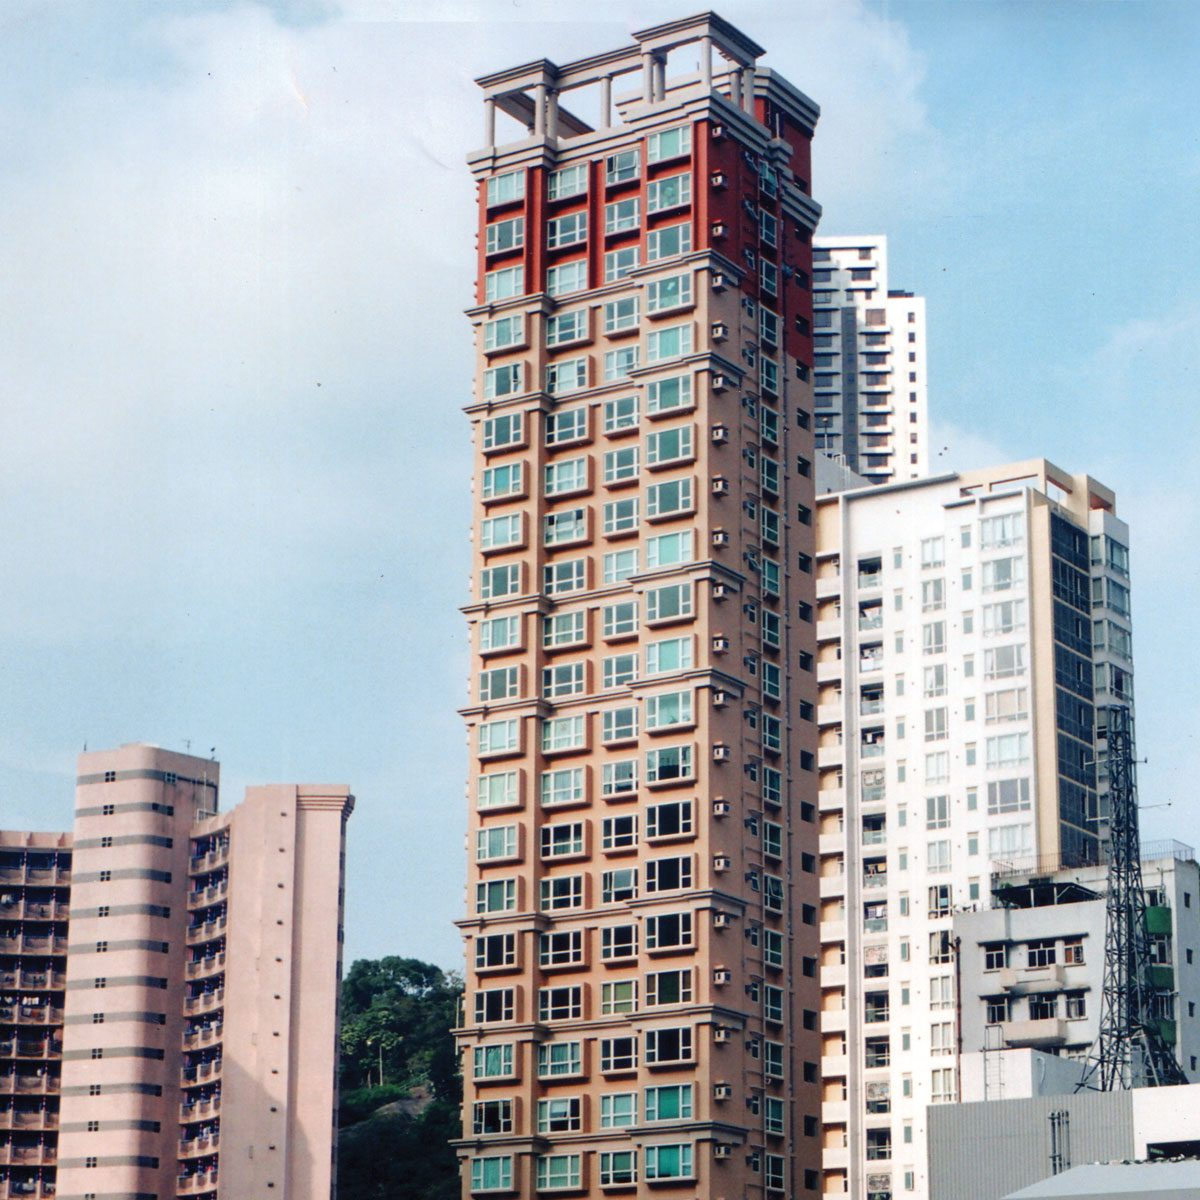 Le Cachet, Residential Development at 69 Sing Woo Road, Happy Valley, Hong Kong